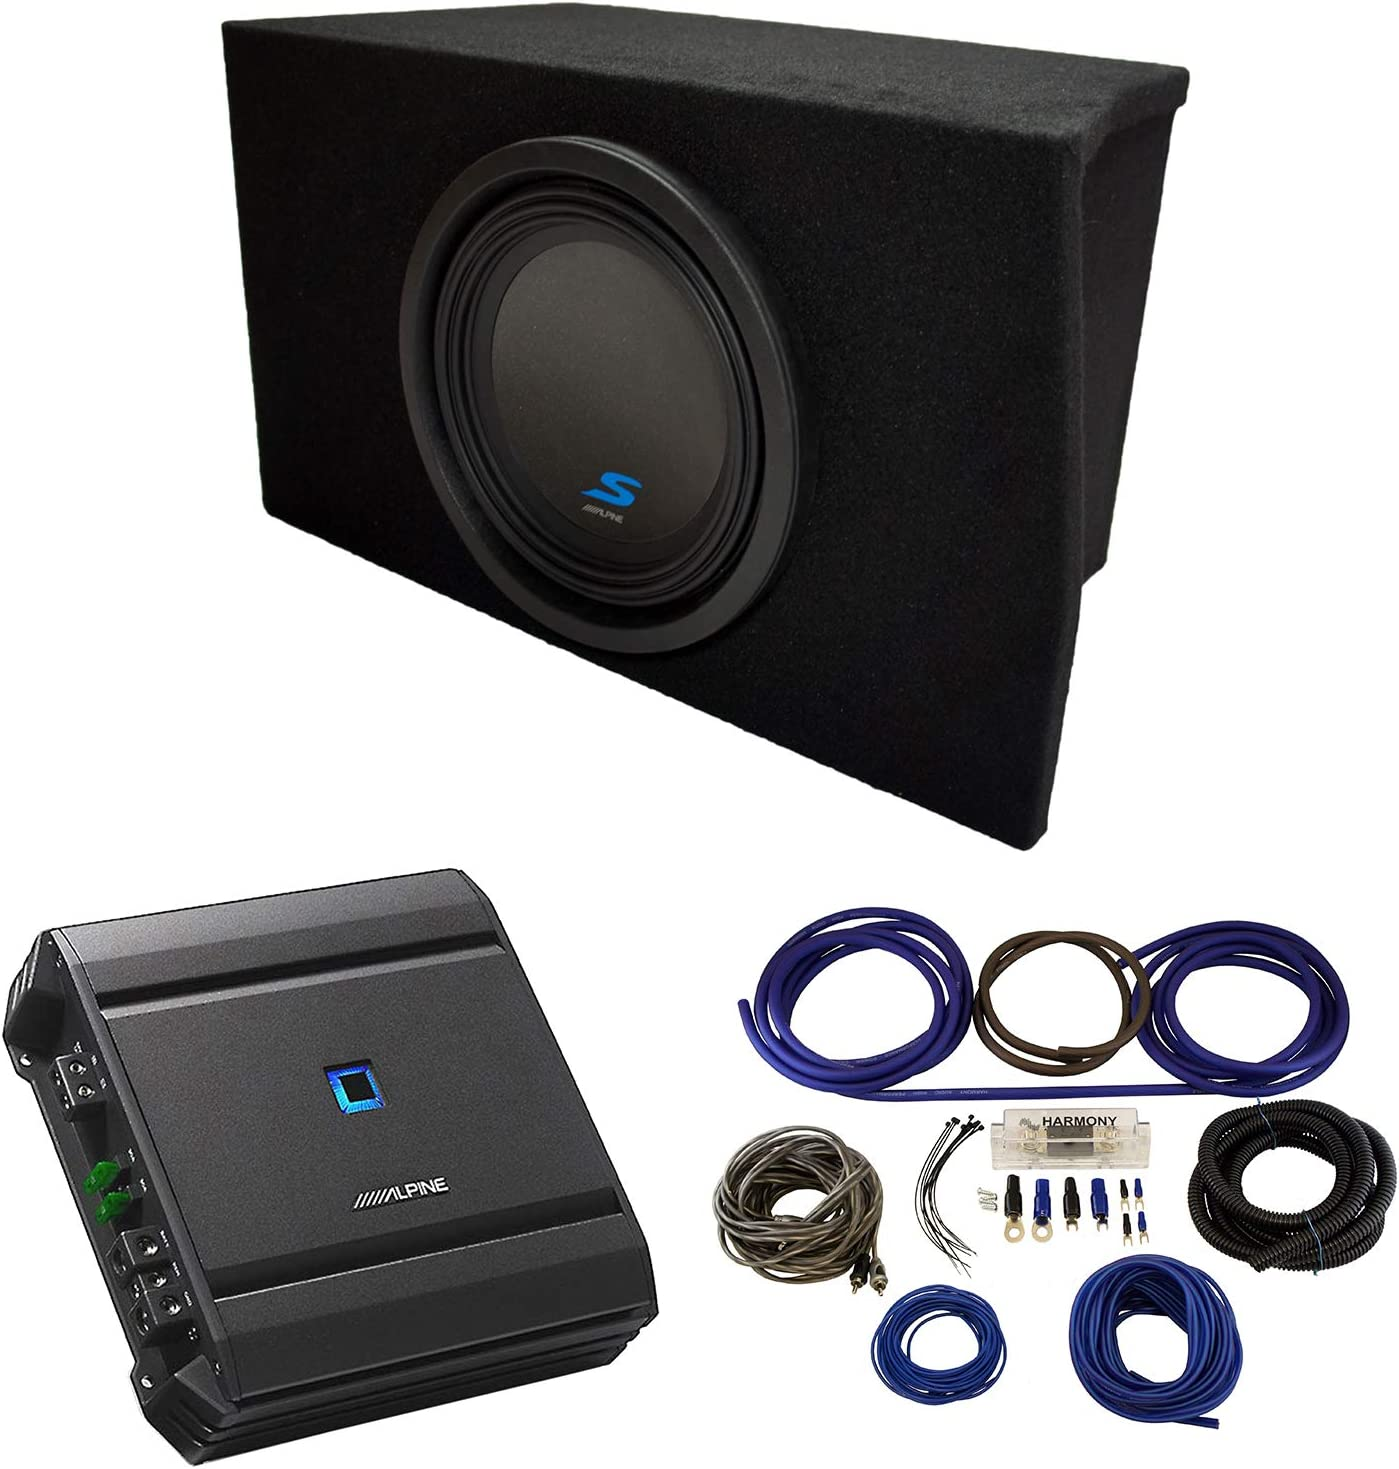 Compatible with 2005-2015 Ford Mustang Coupe Alpine Type S S-W10D2 Dual 10 Custom Sub Box Enclosure with S-A60M Amplifier /& 4GA Amp Kit